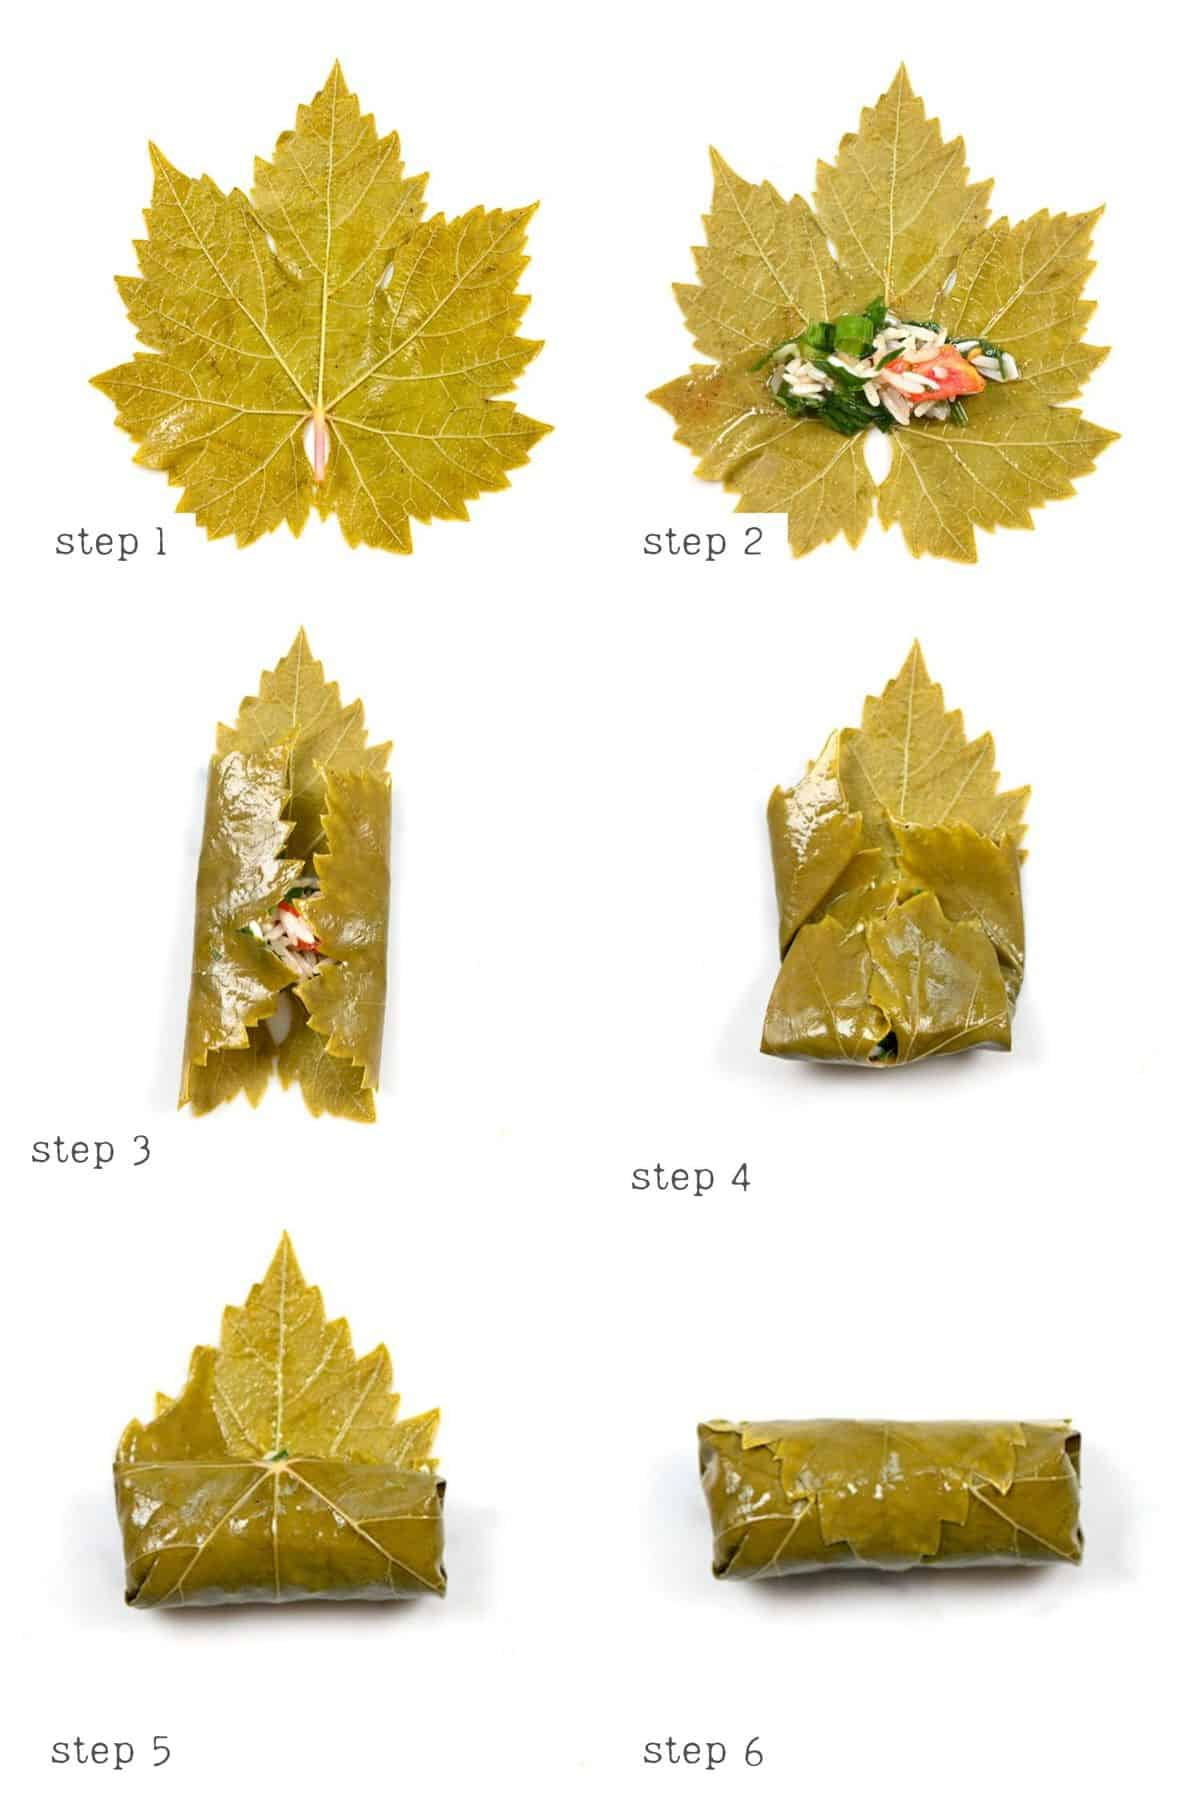 Steps for wrapping vine leaf